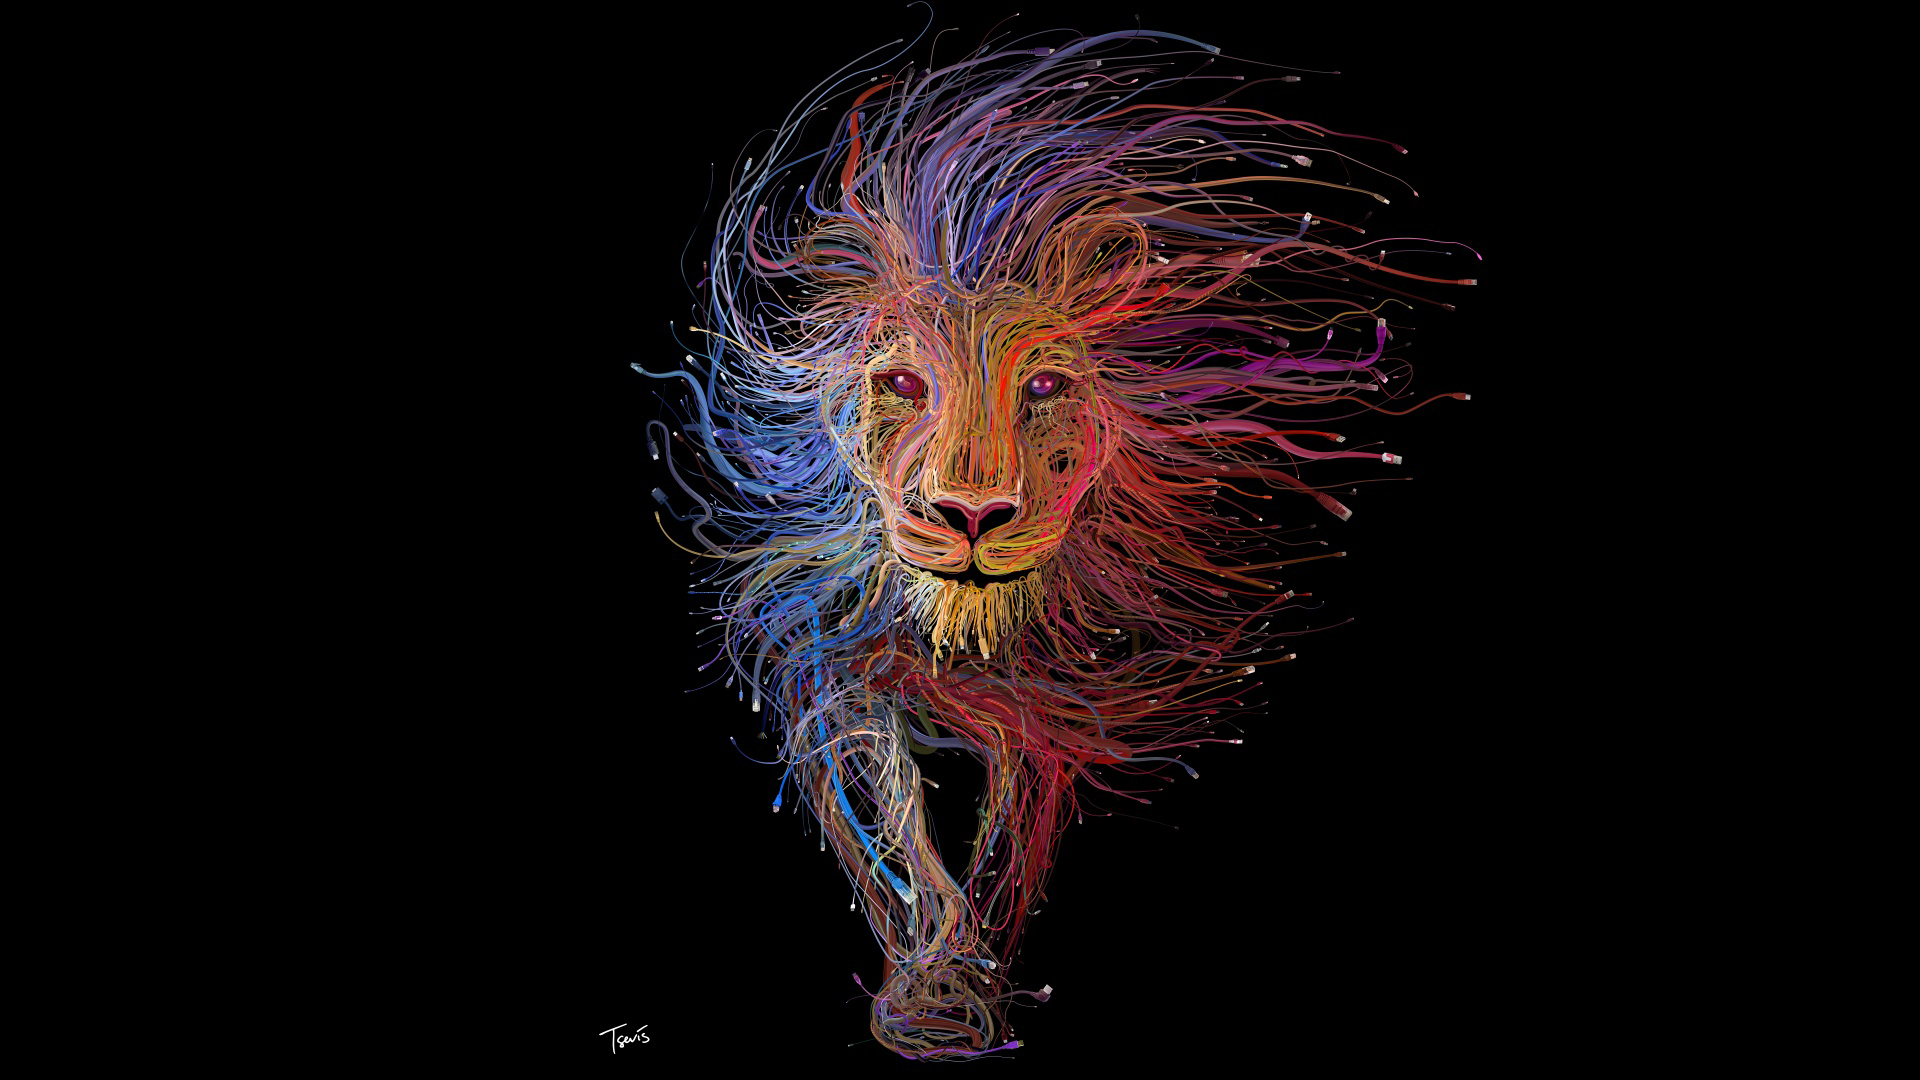 Lion-King-Art-1920x1080-Need-iPhone-S-Plus-Background-for-IPhoneSPlus-Follow-i-wallpaper-wp3408157